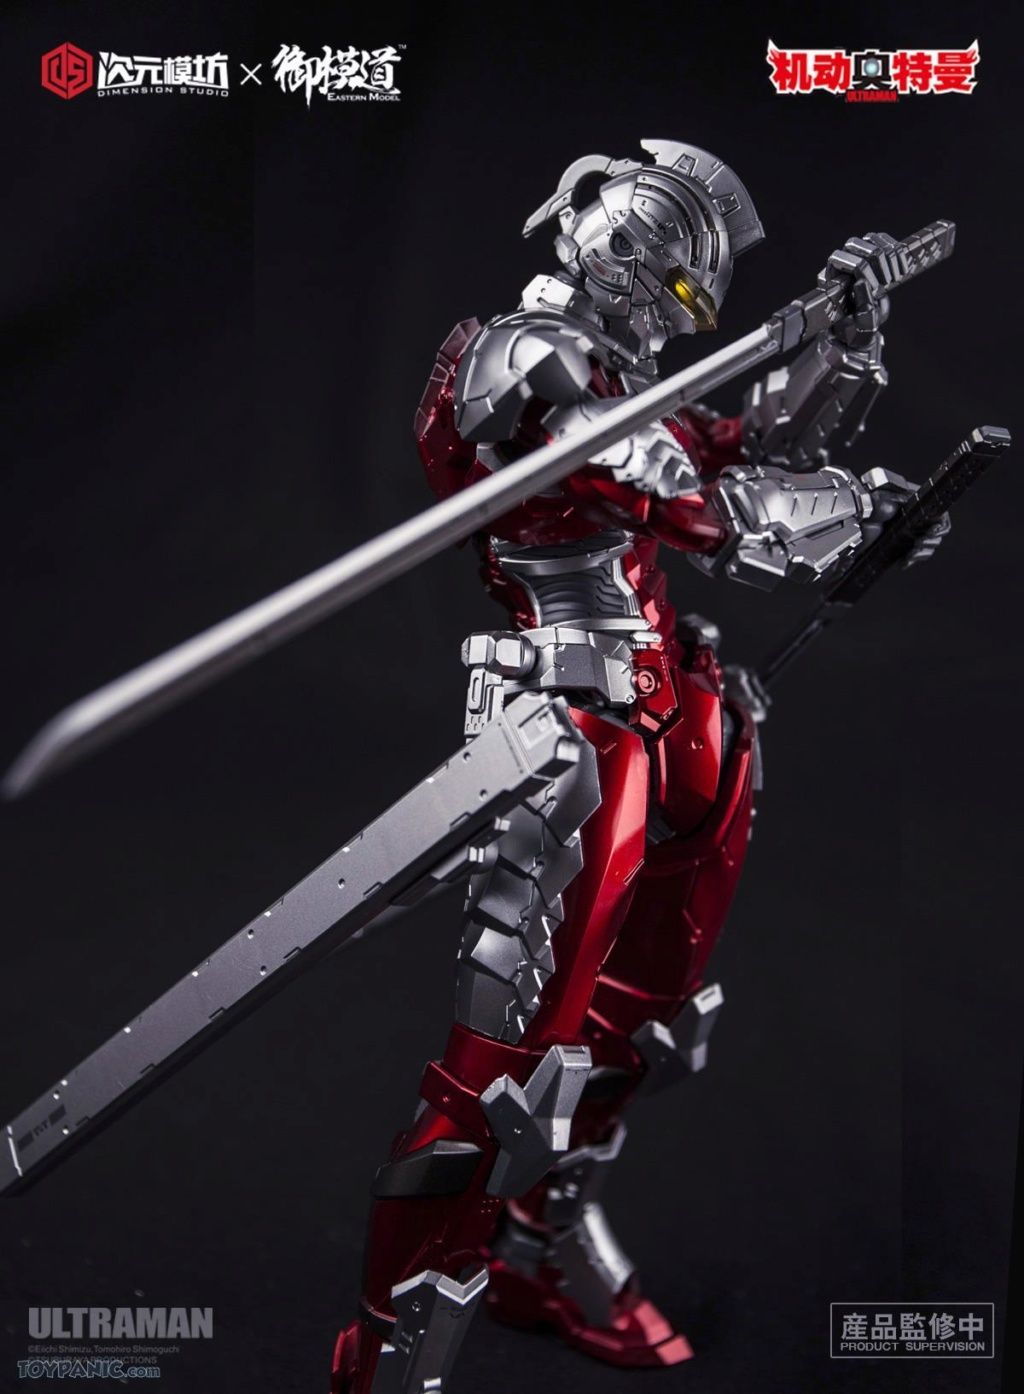 Ultraman - NEW PRODUCT: Dimension Studio X Model Principle: 1/6 Ultra Seven Suit Ver. 7.0 Action Figure  15201910